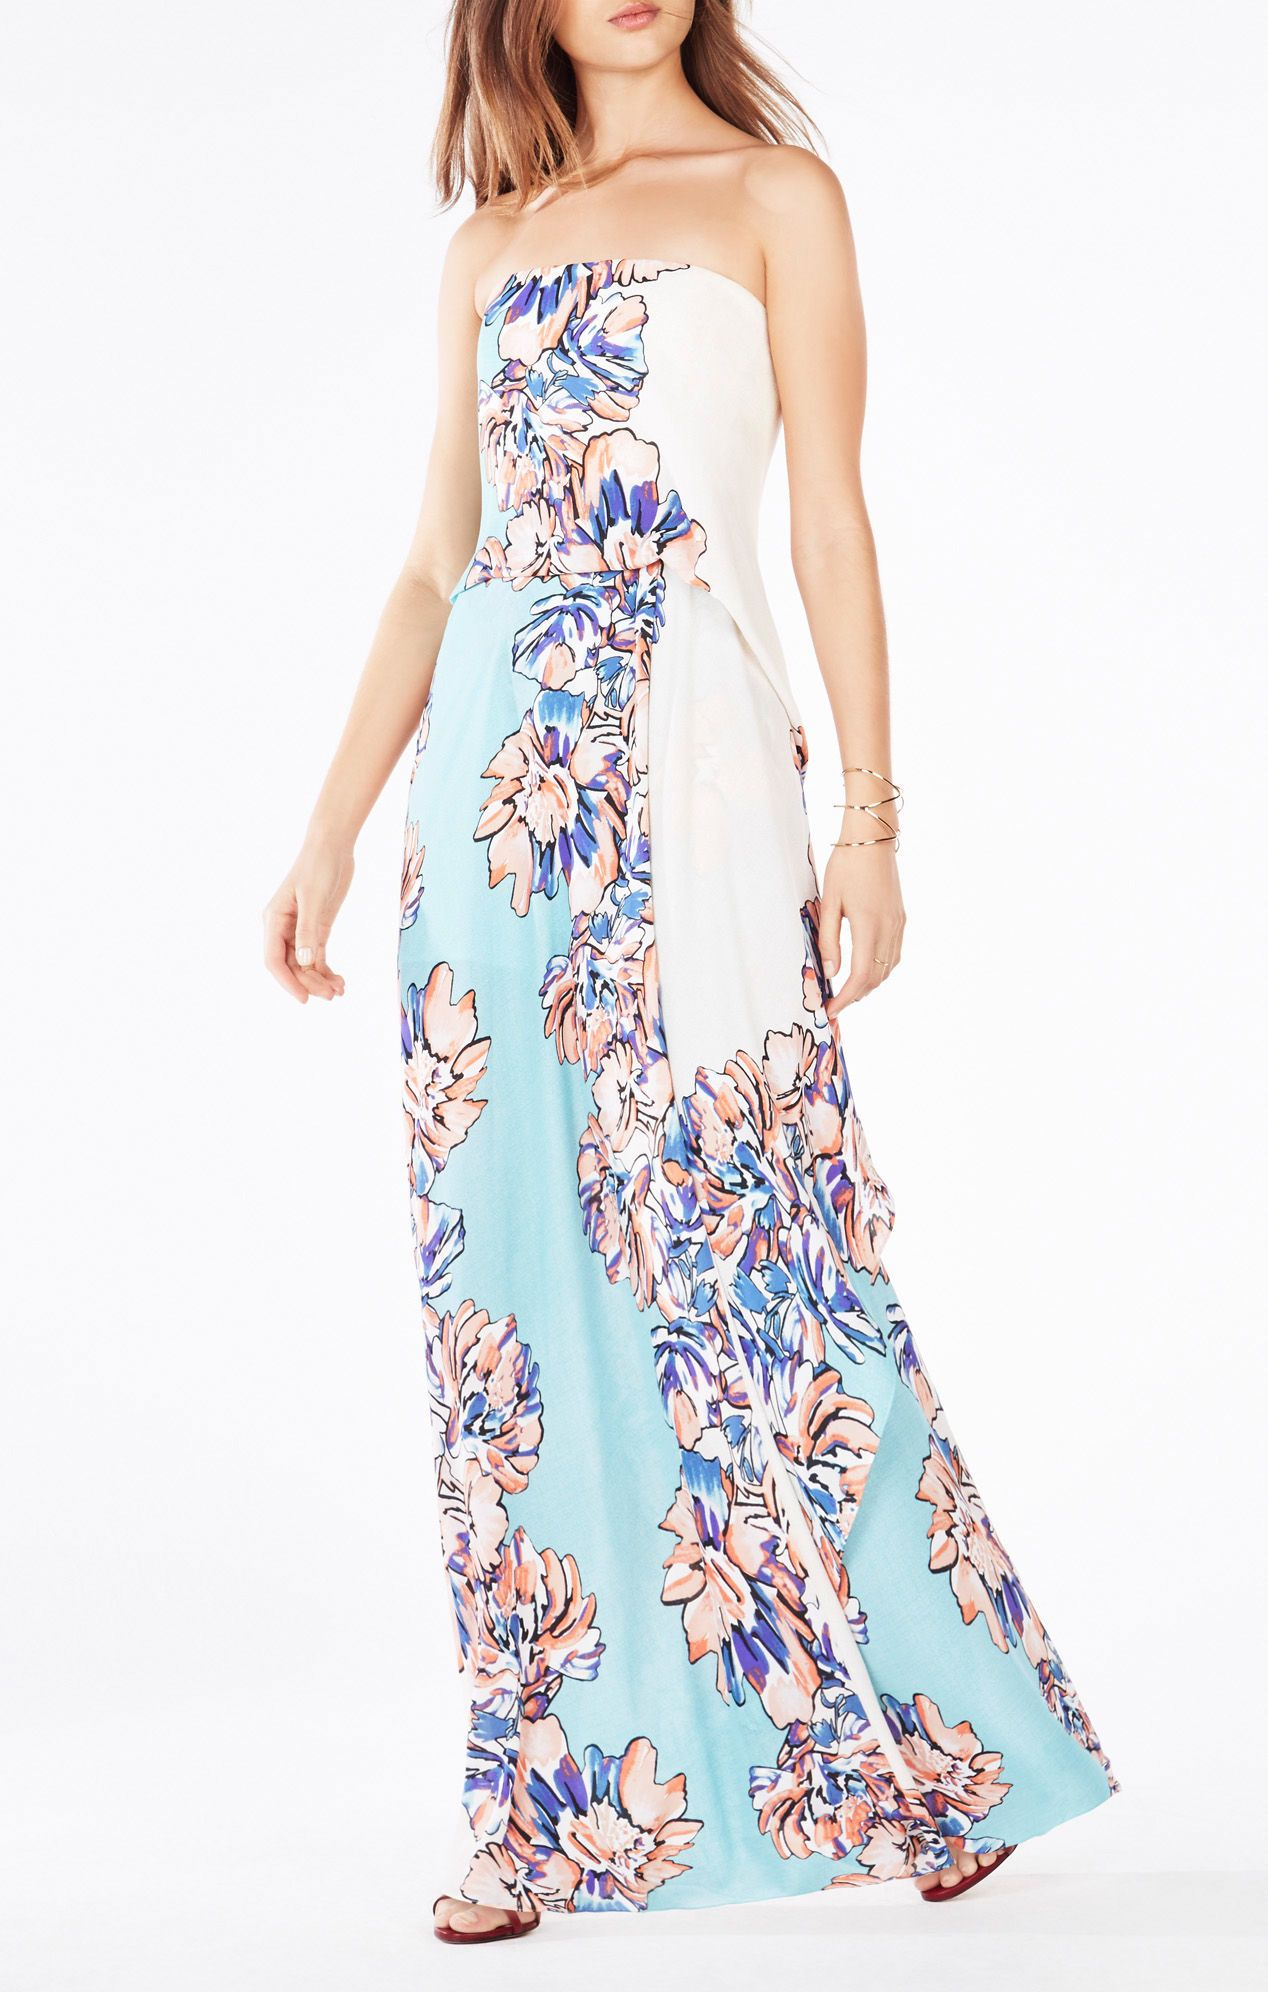 Grace Strapless Floral Print Dress Dresses Pinterest Dresses